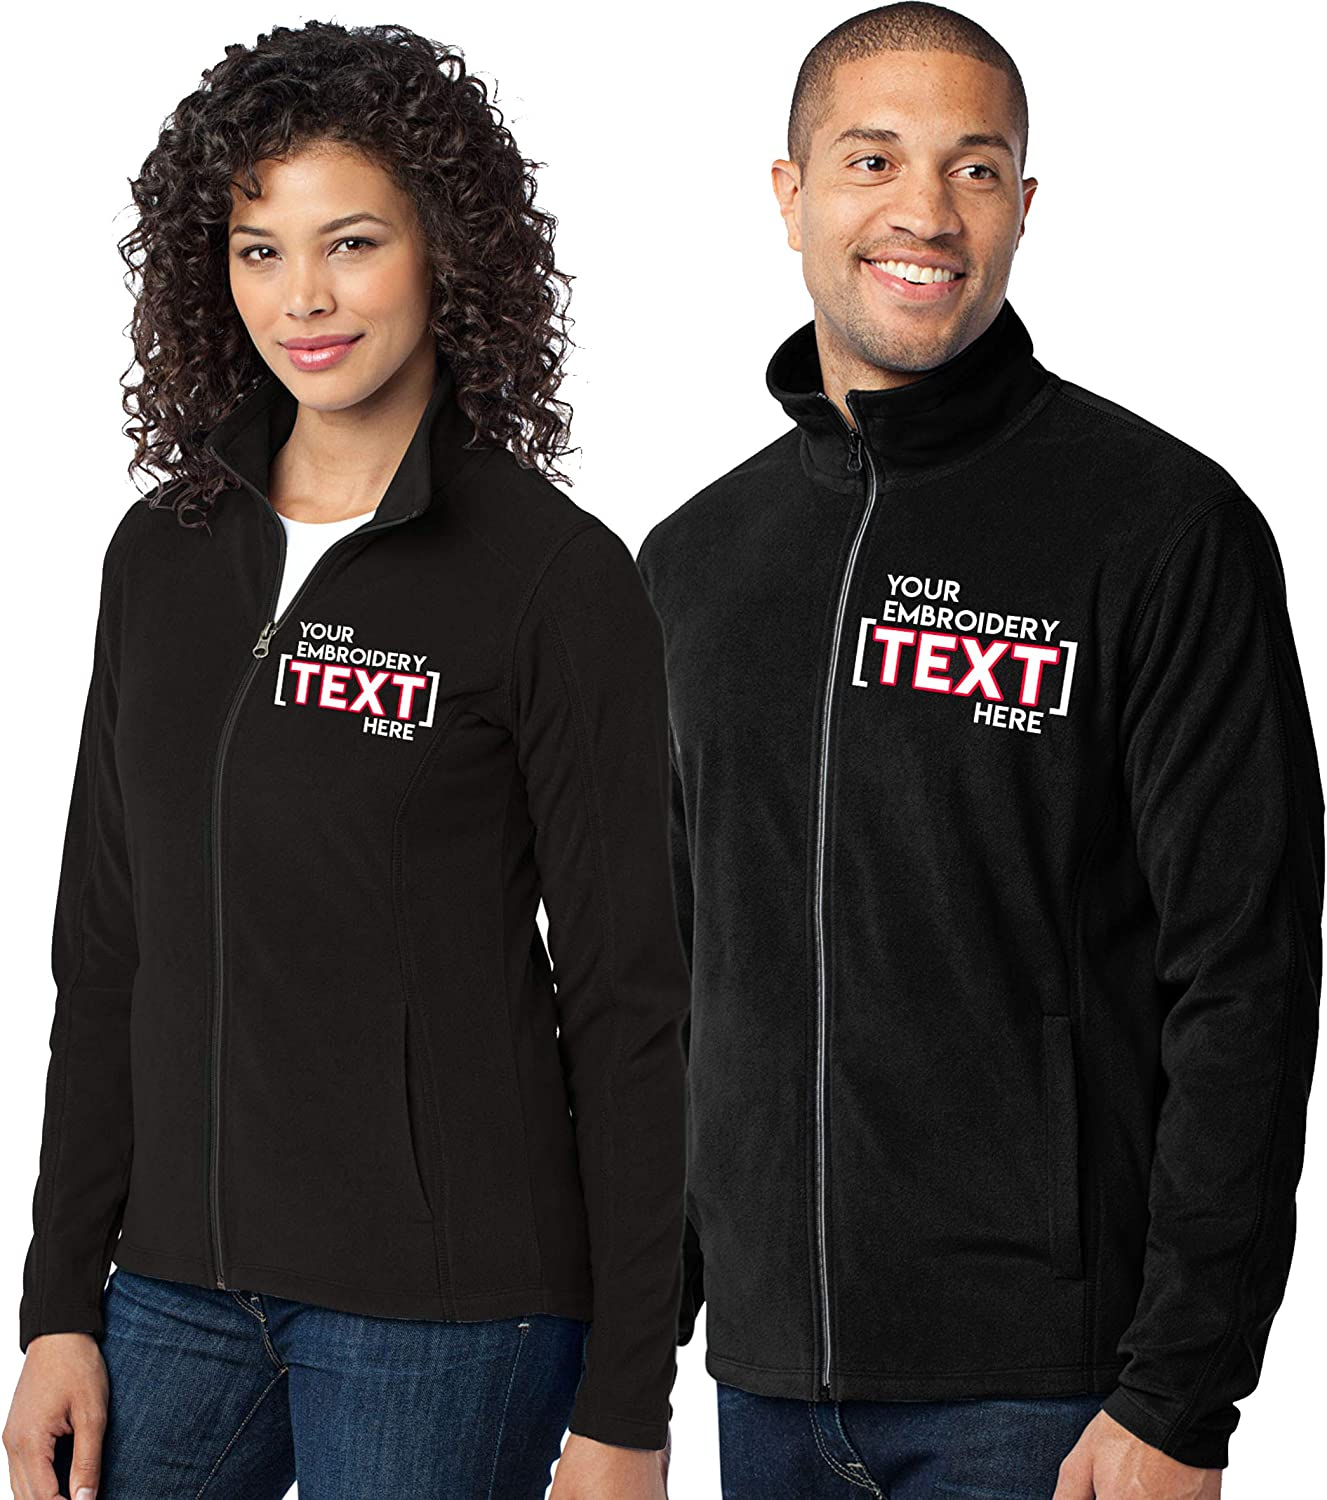 Custom Embroidered Lightweight Jacket for Women & Men - Add Your Text - Embroidery Zip Up Fleece Outerwear